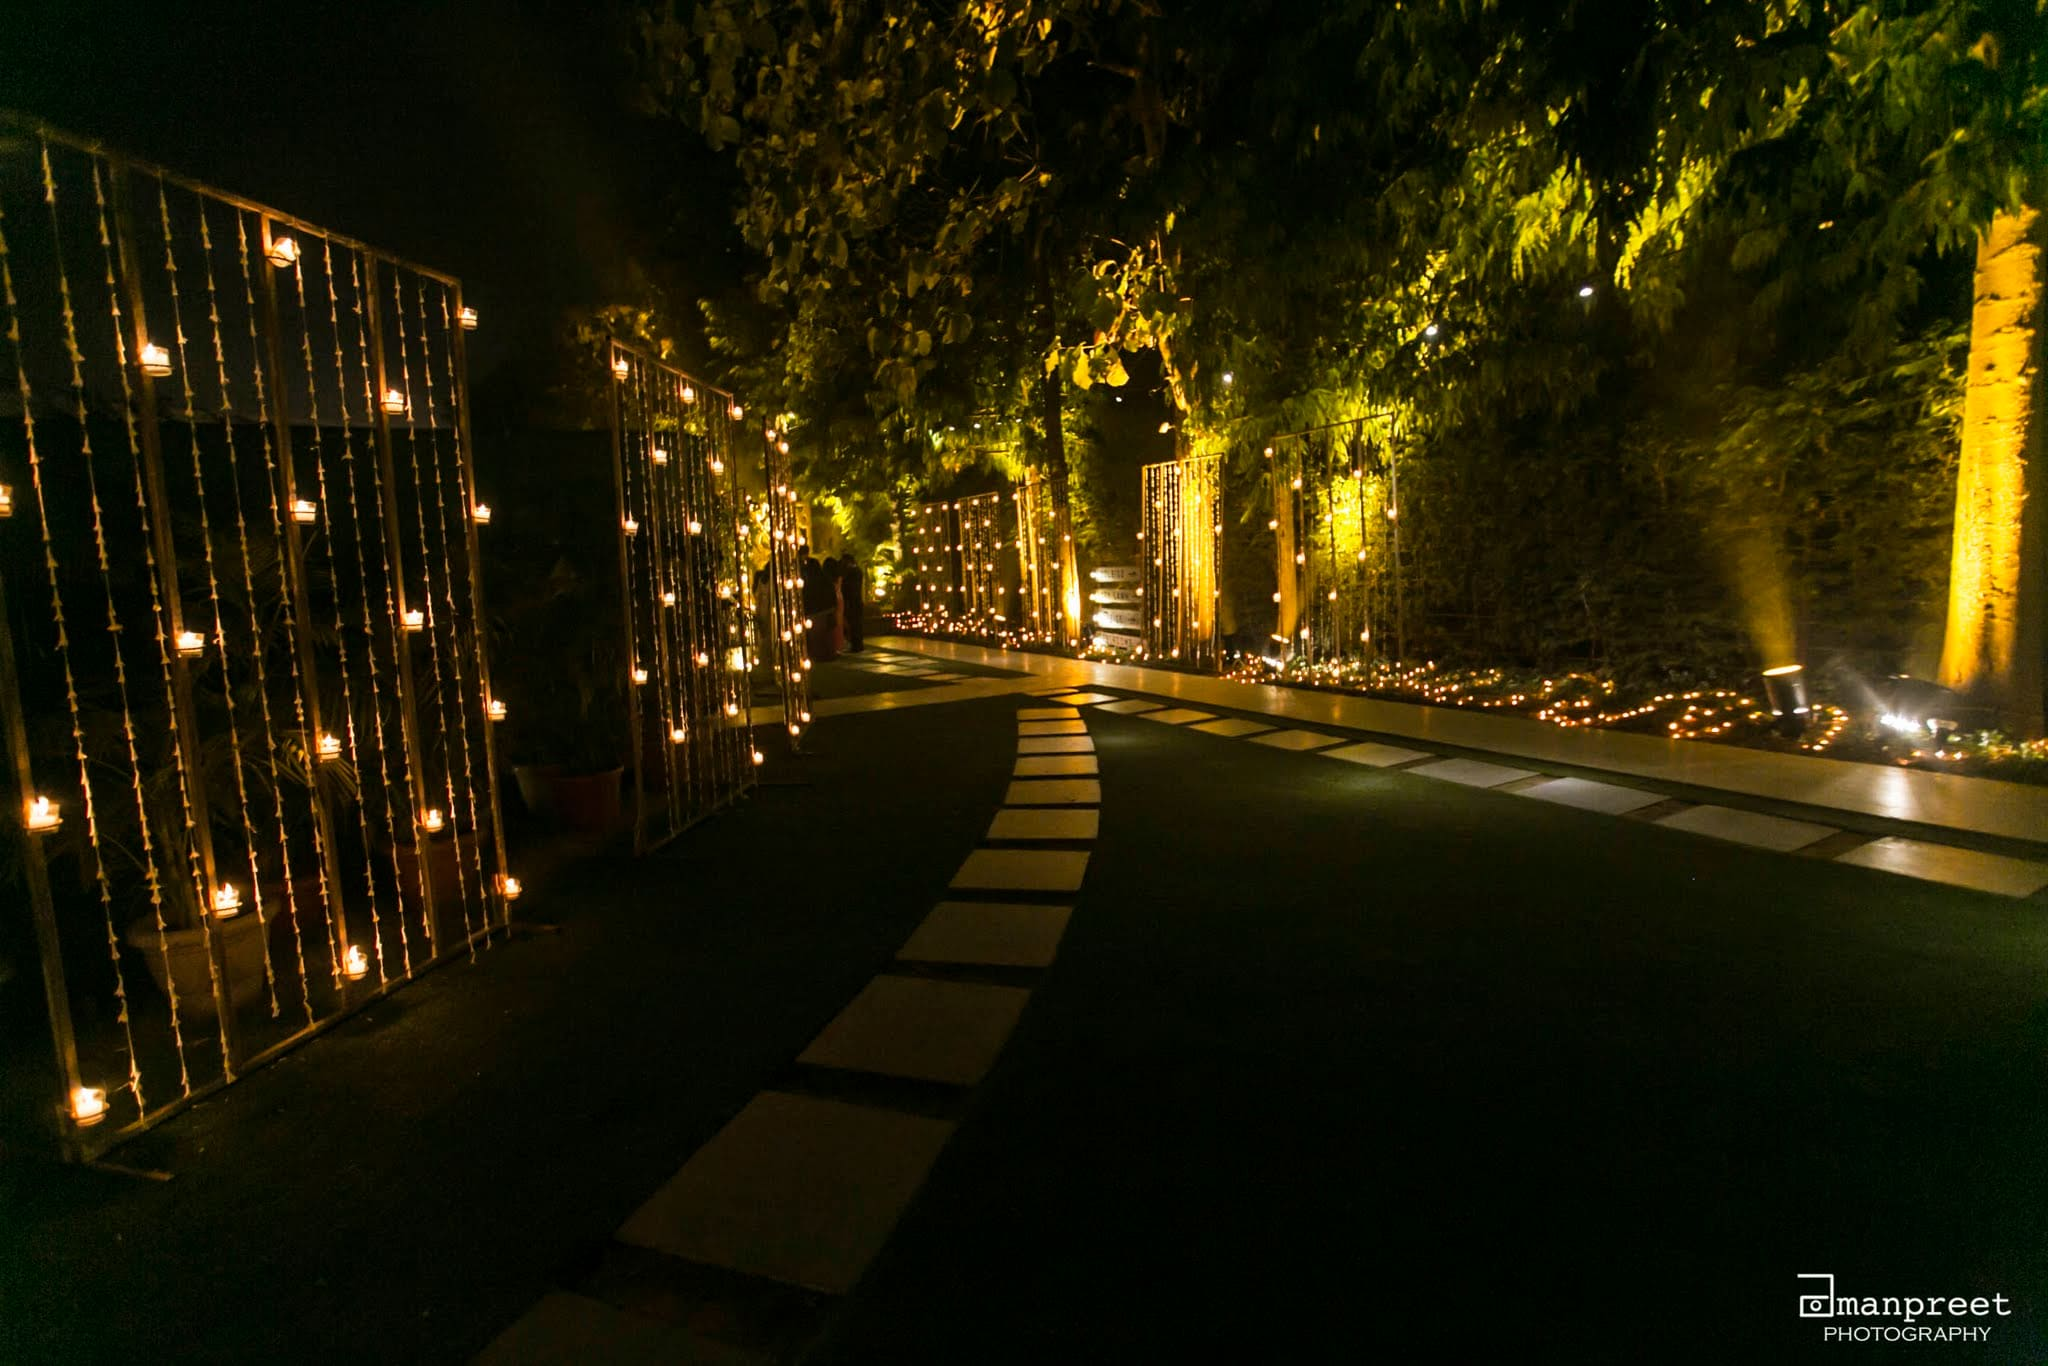 the grand wedding decoration!:the umrao, mandira wirk, amanpreet photography, zorba